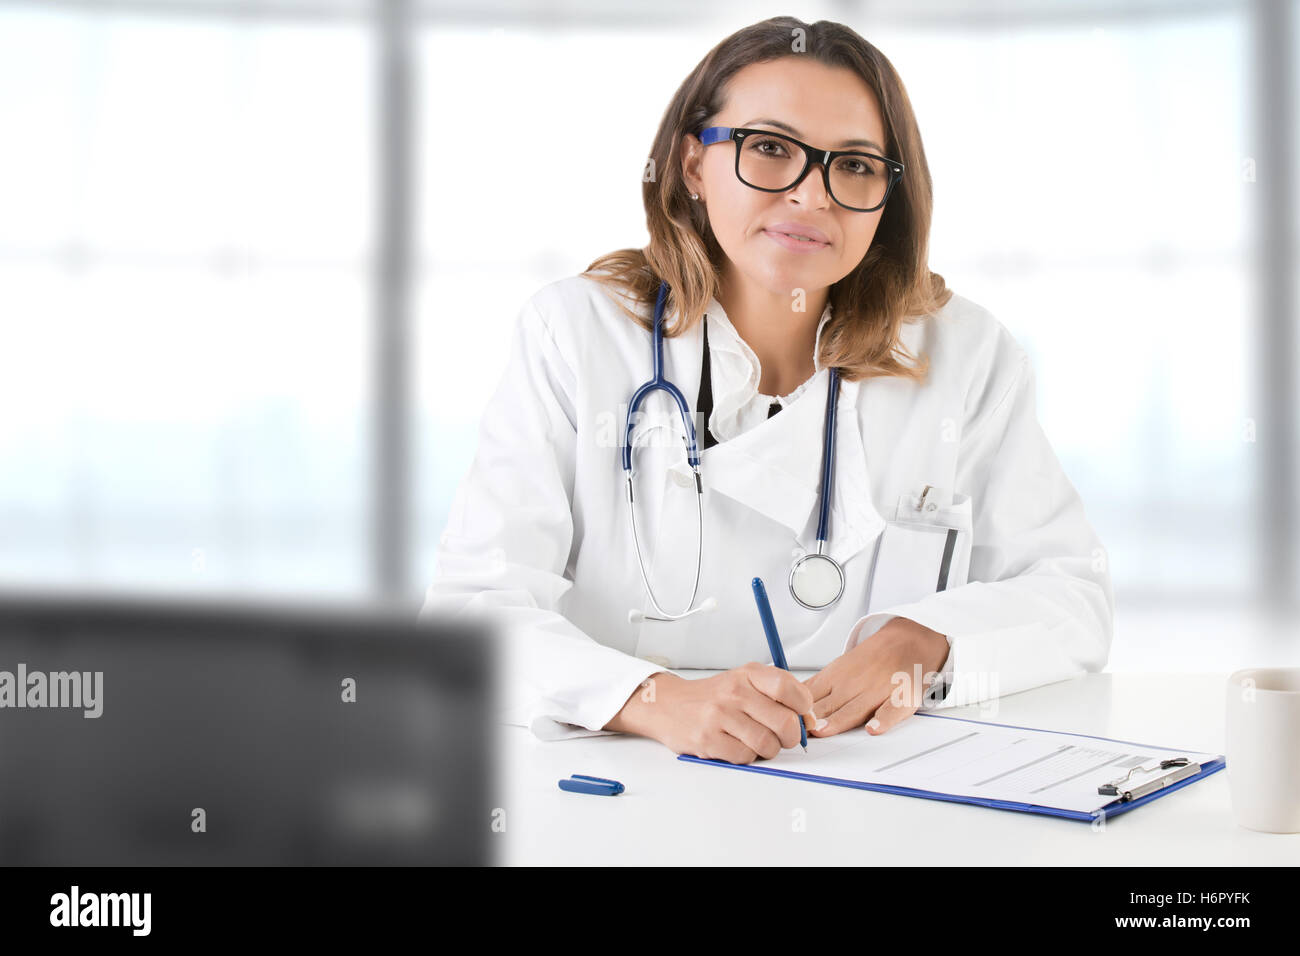 Female doctor at work, isolated in white - Stock Image